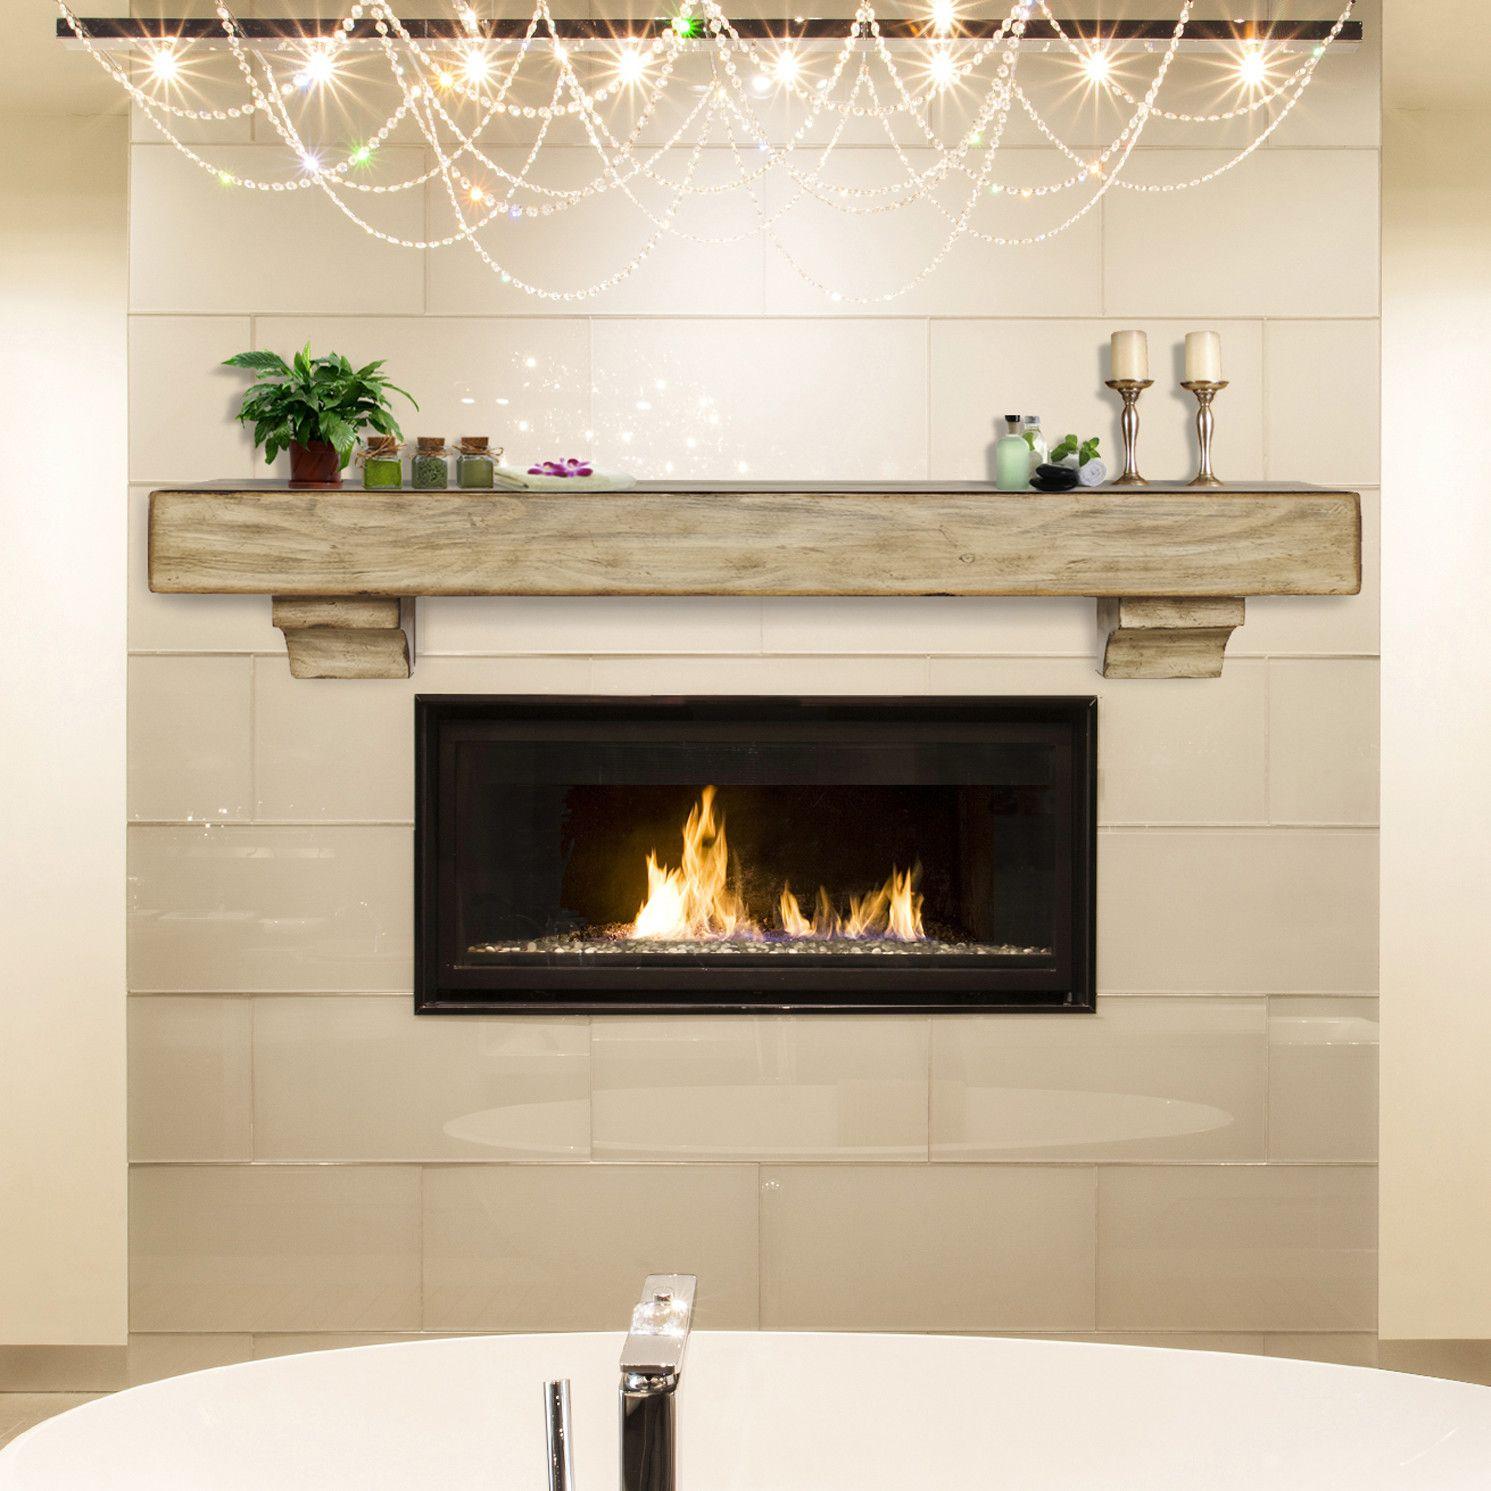 Exciting mantel shelf for inspiring floating shelves for Fireplace mantel shelf designs